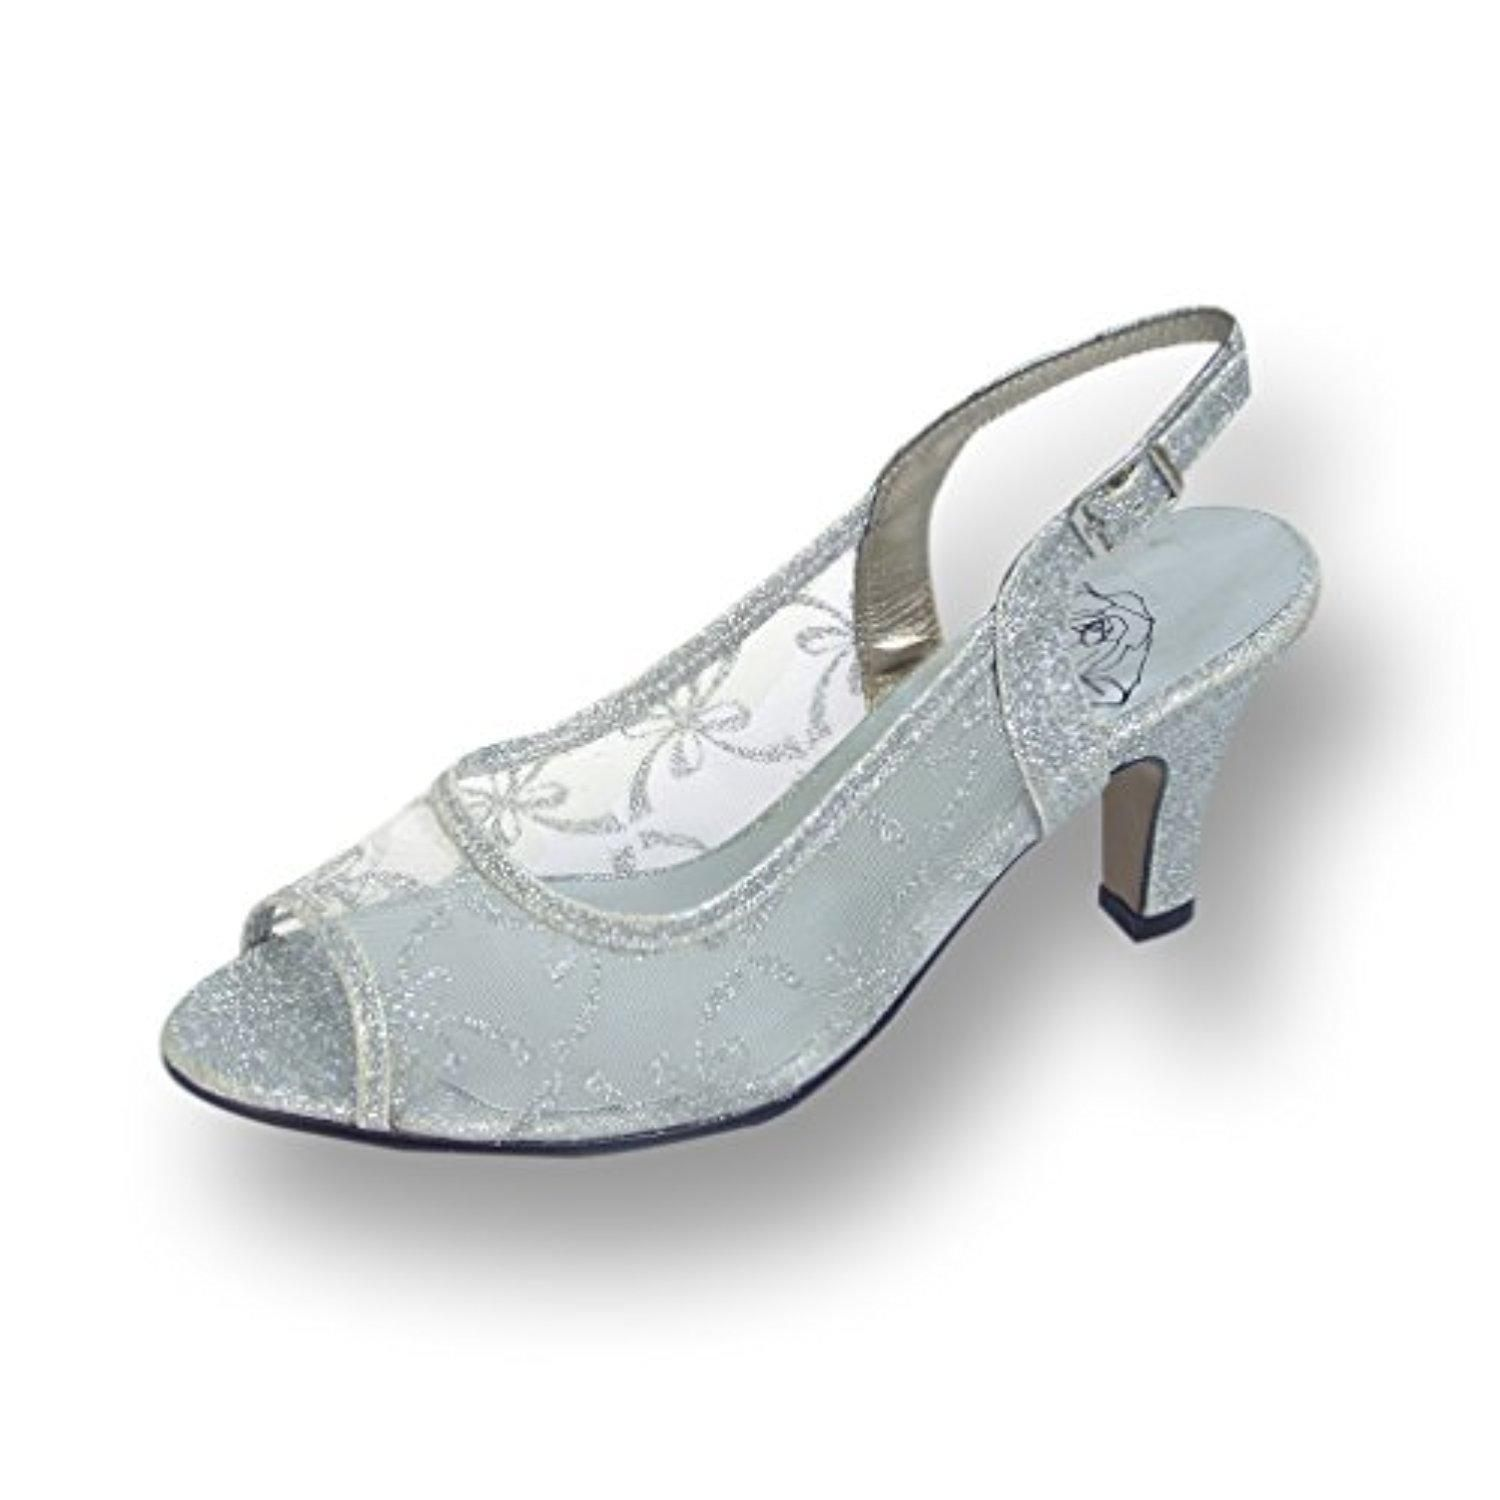 c46d5d3a2d7 FIC FLORAL Violet Women Wide Width Slingback Mesh Pump SILVER 10 - Brought  to you by Avarsha.com